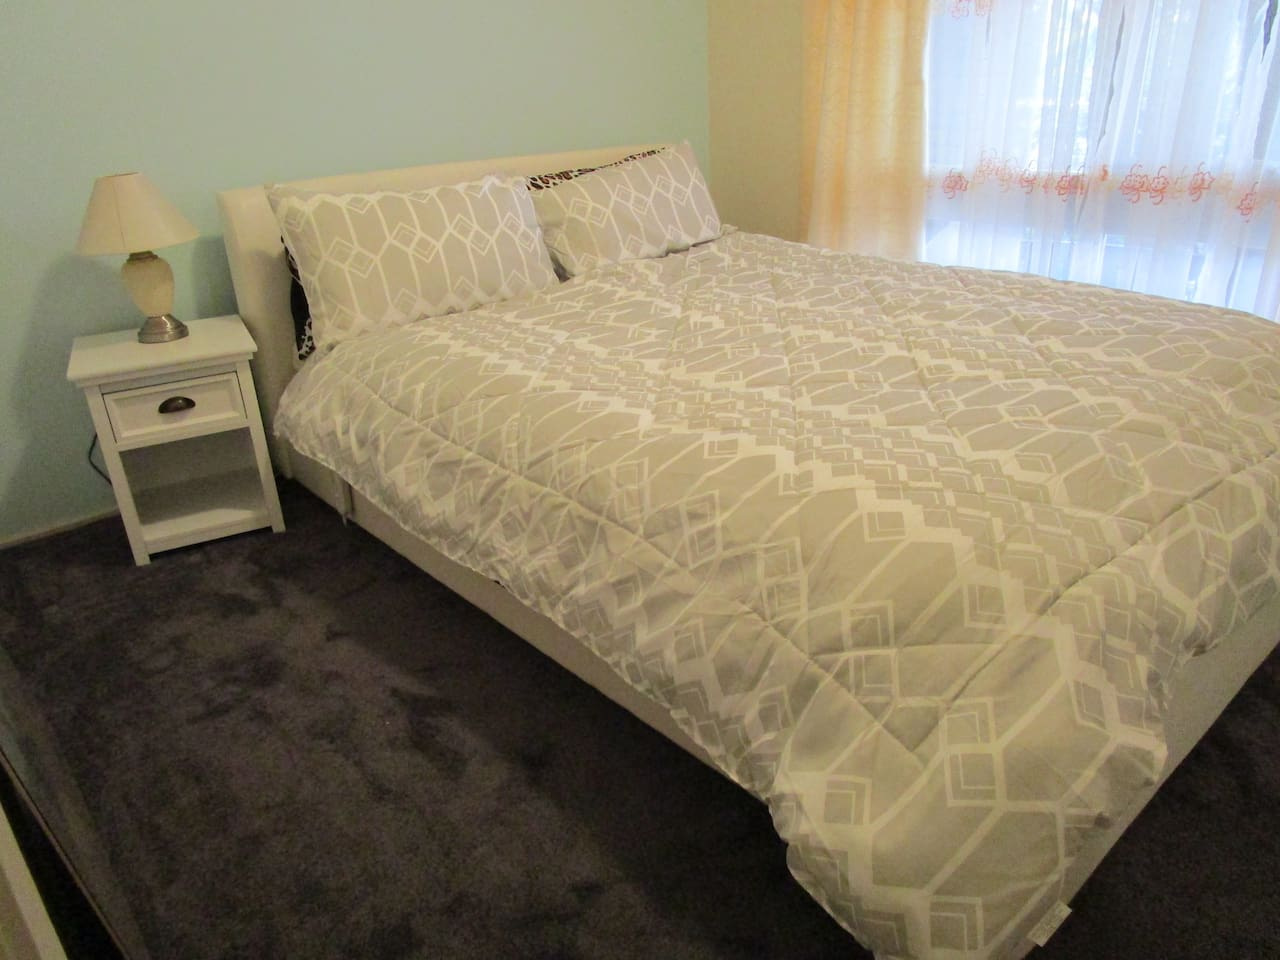 Queen bed with electric blankets